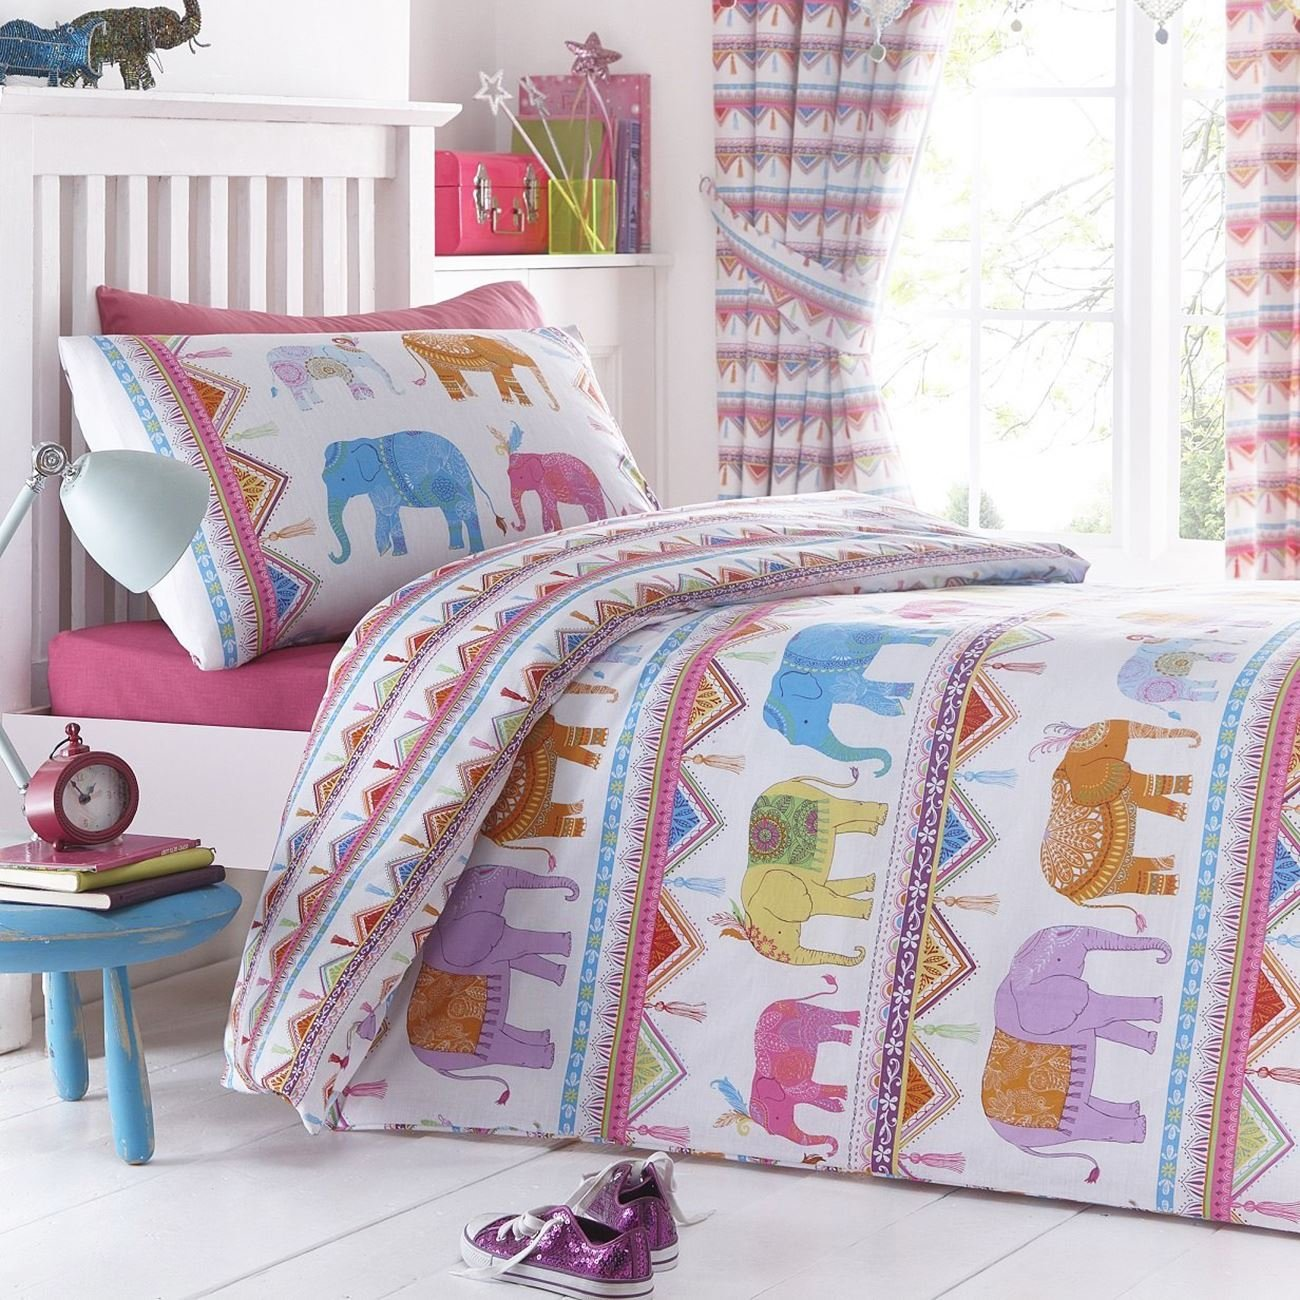 Carnival Elephants UK Single/US Twin Duvet Cover and Pillowcase Set' / Amazon: 'Carnival Elephants Single Bedding